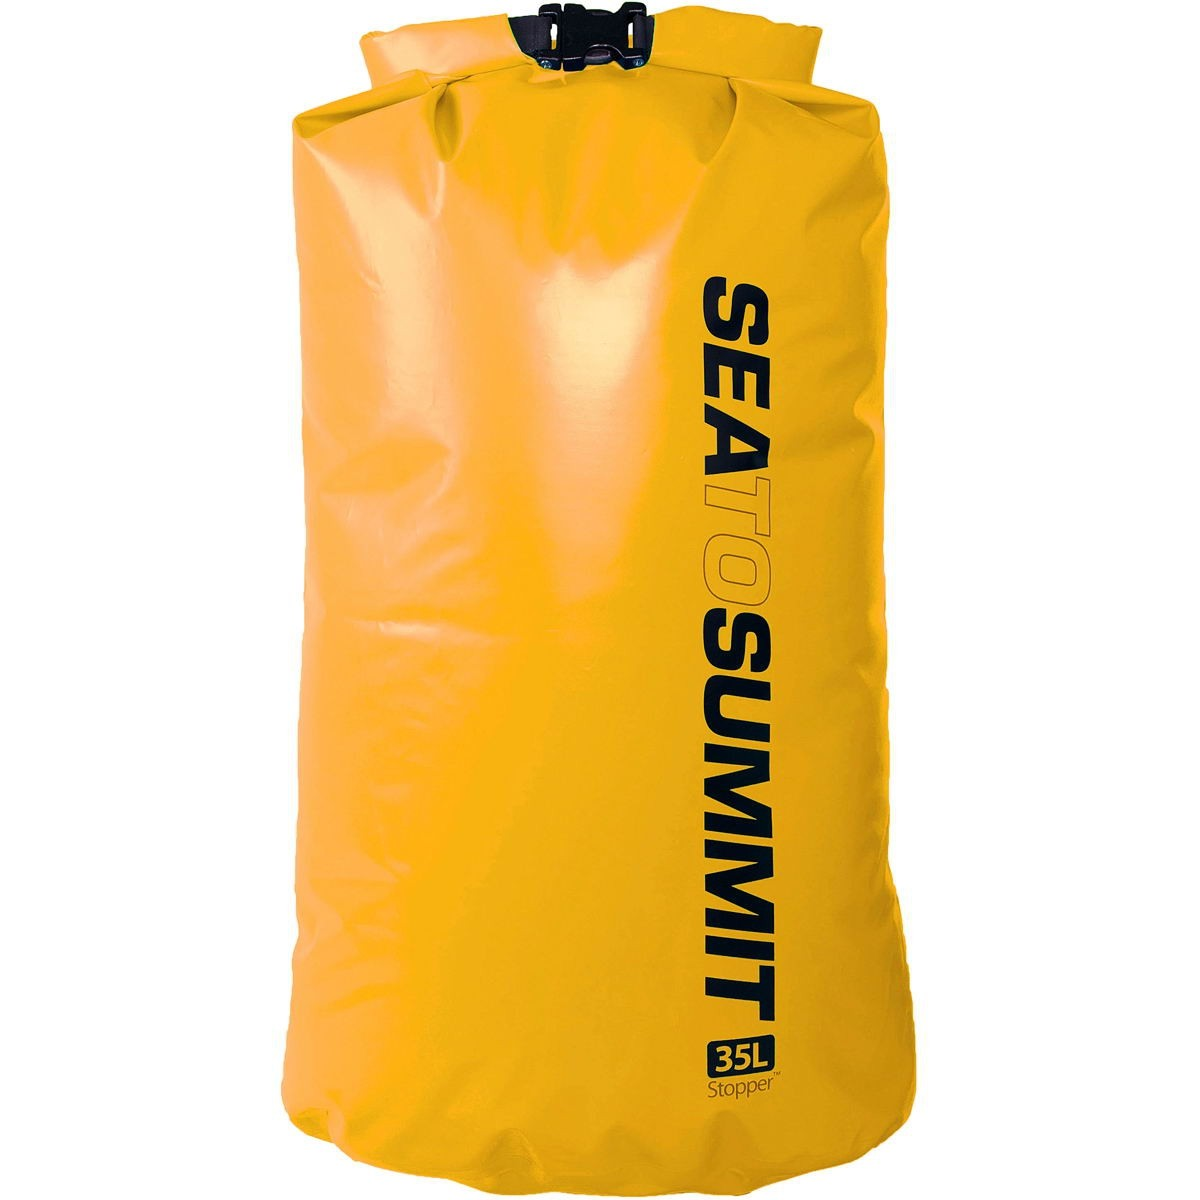 Sea To Summit Stopper Dry Bag 35L Yellow